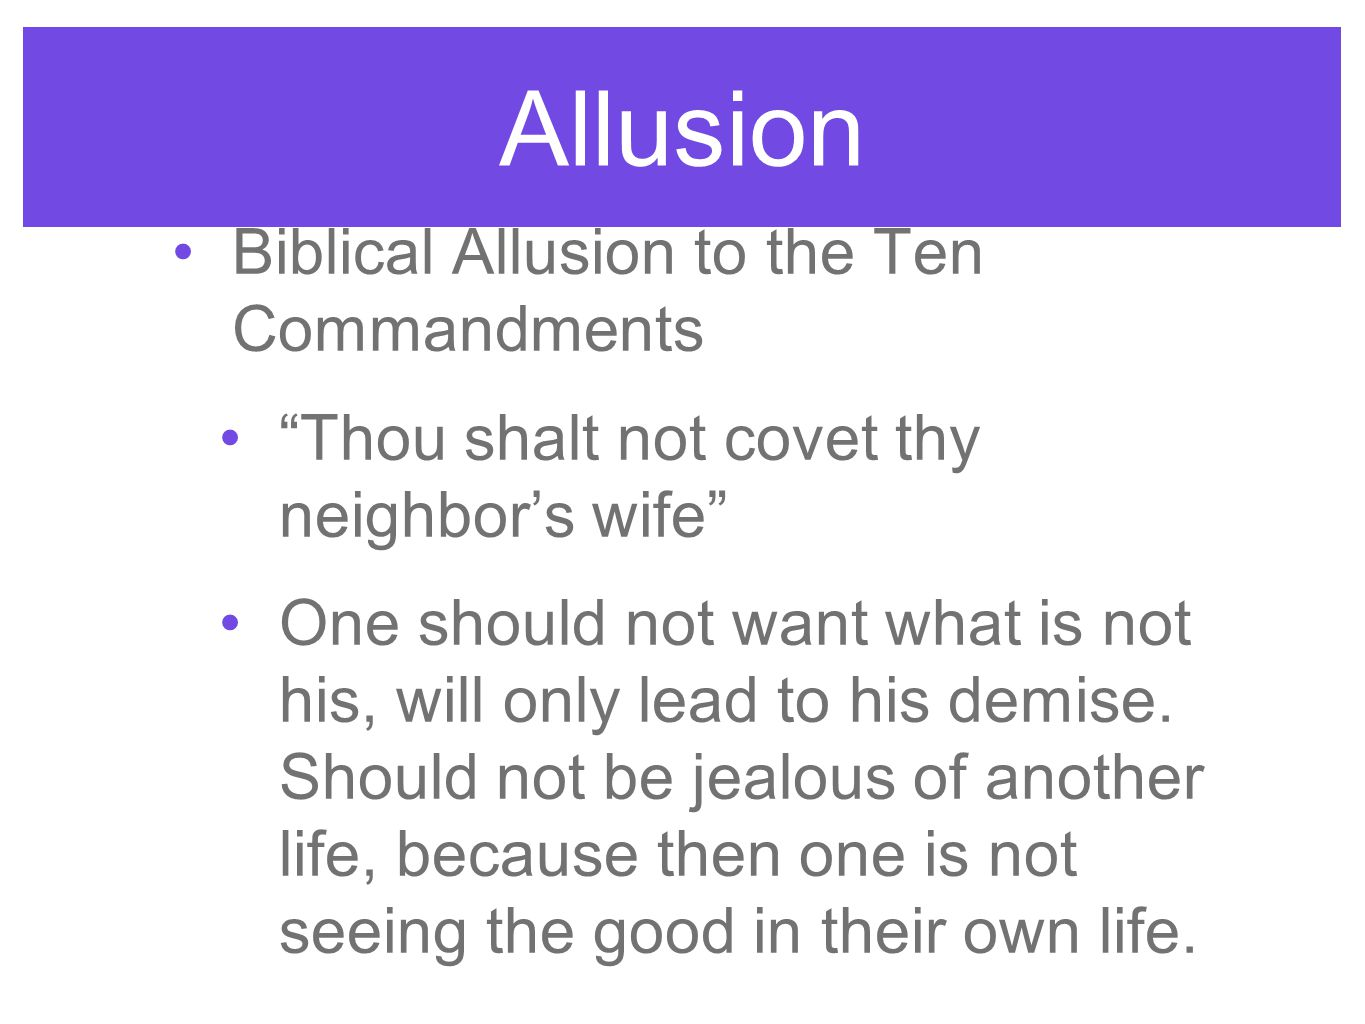 Allusion Biblical Allusion to the Ten Commandments Thou shalt not covet thy neighbors wife One should not want what is not his, will only lead to his